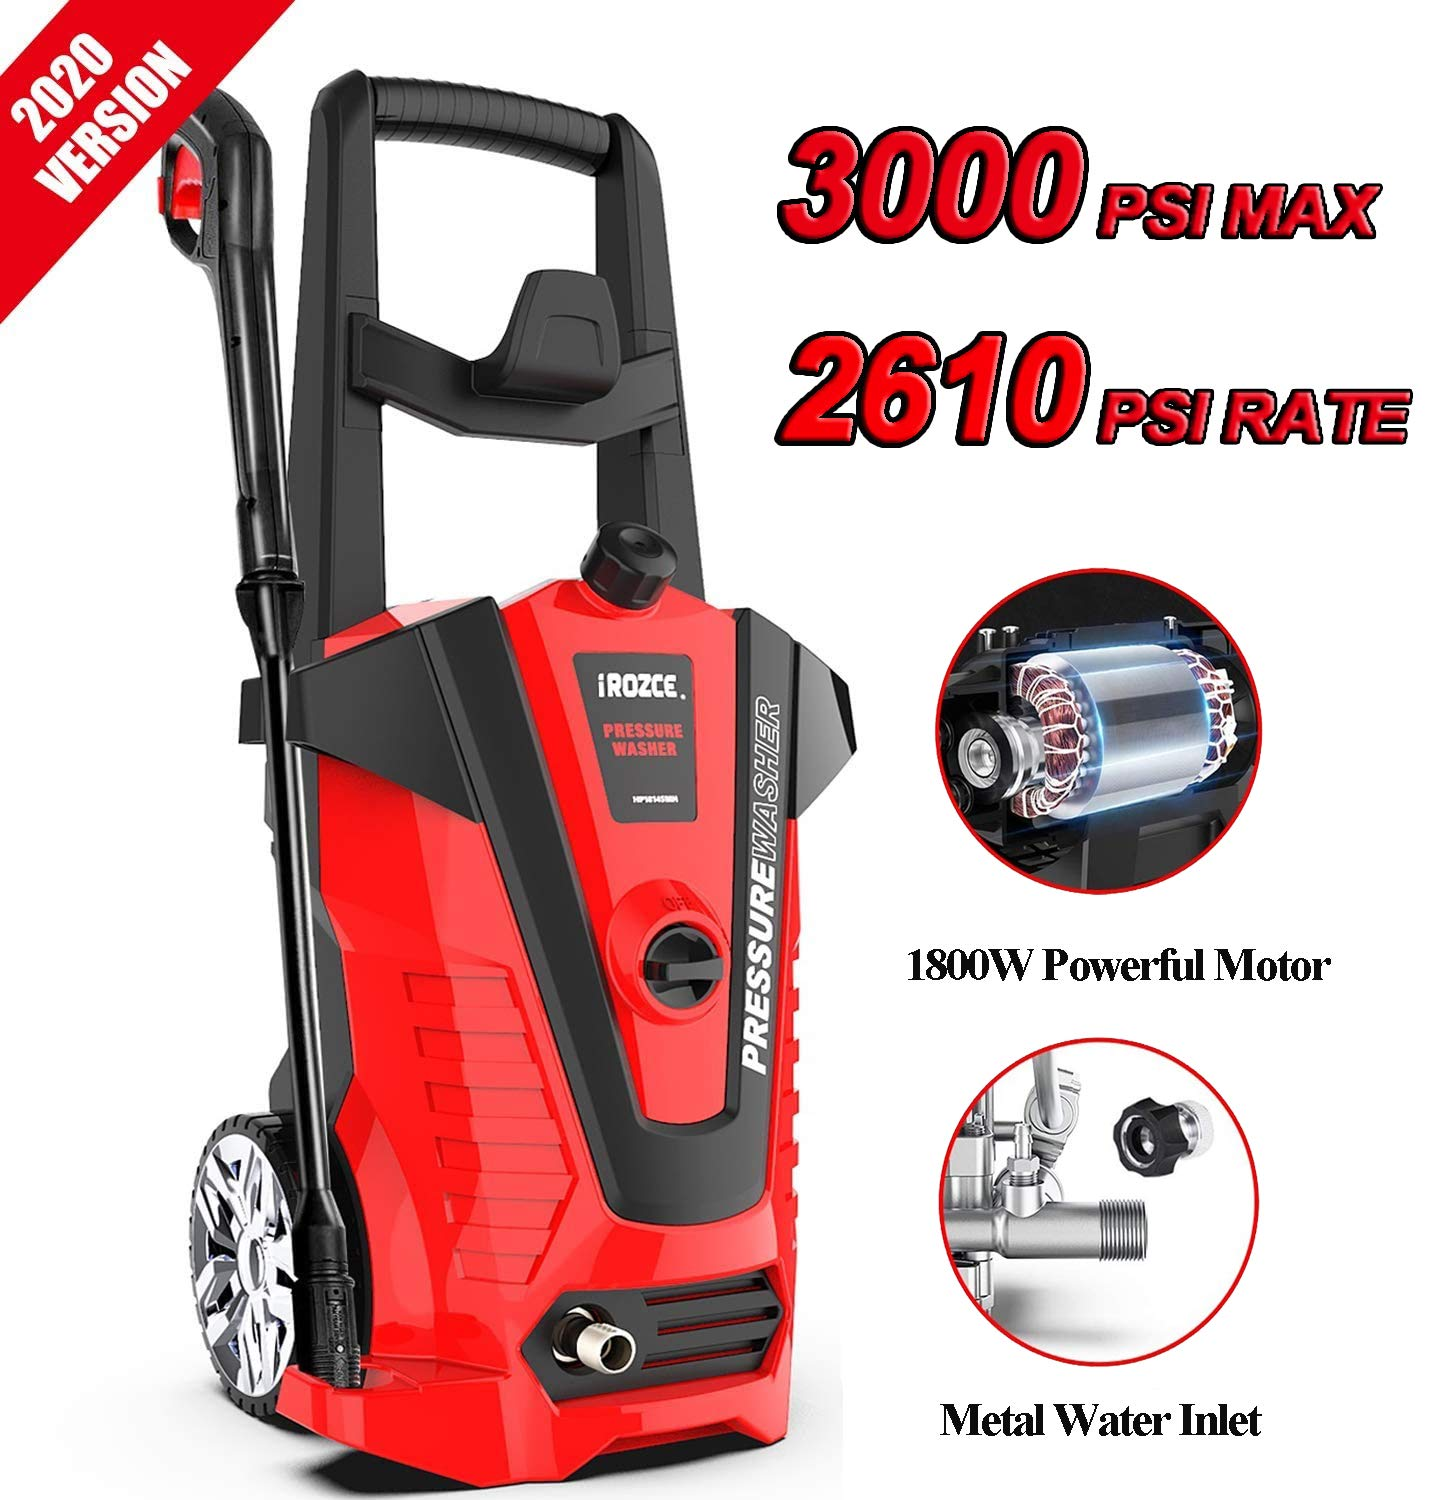 iRozce Pressure Washers 2610PSI 1.85GPM Electric Power Washer with Metal Adapter, Adjustable Nozzle, Build-in Detergent Tank for Driveway, Deck, Patio Furniture, Cars Washing, Red